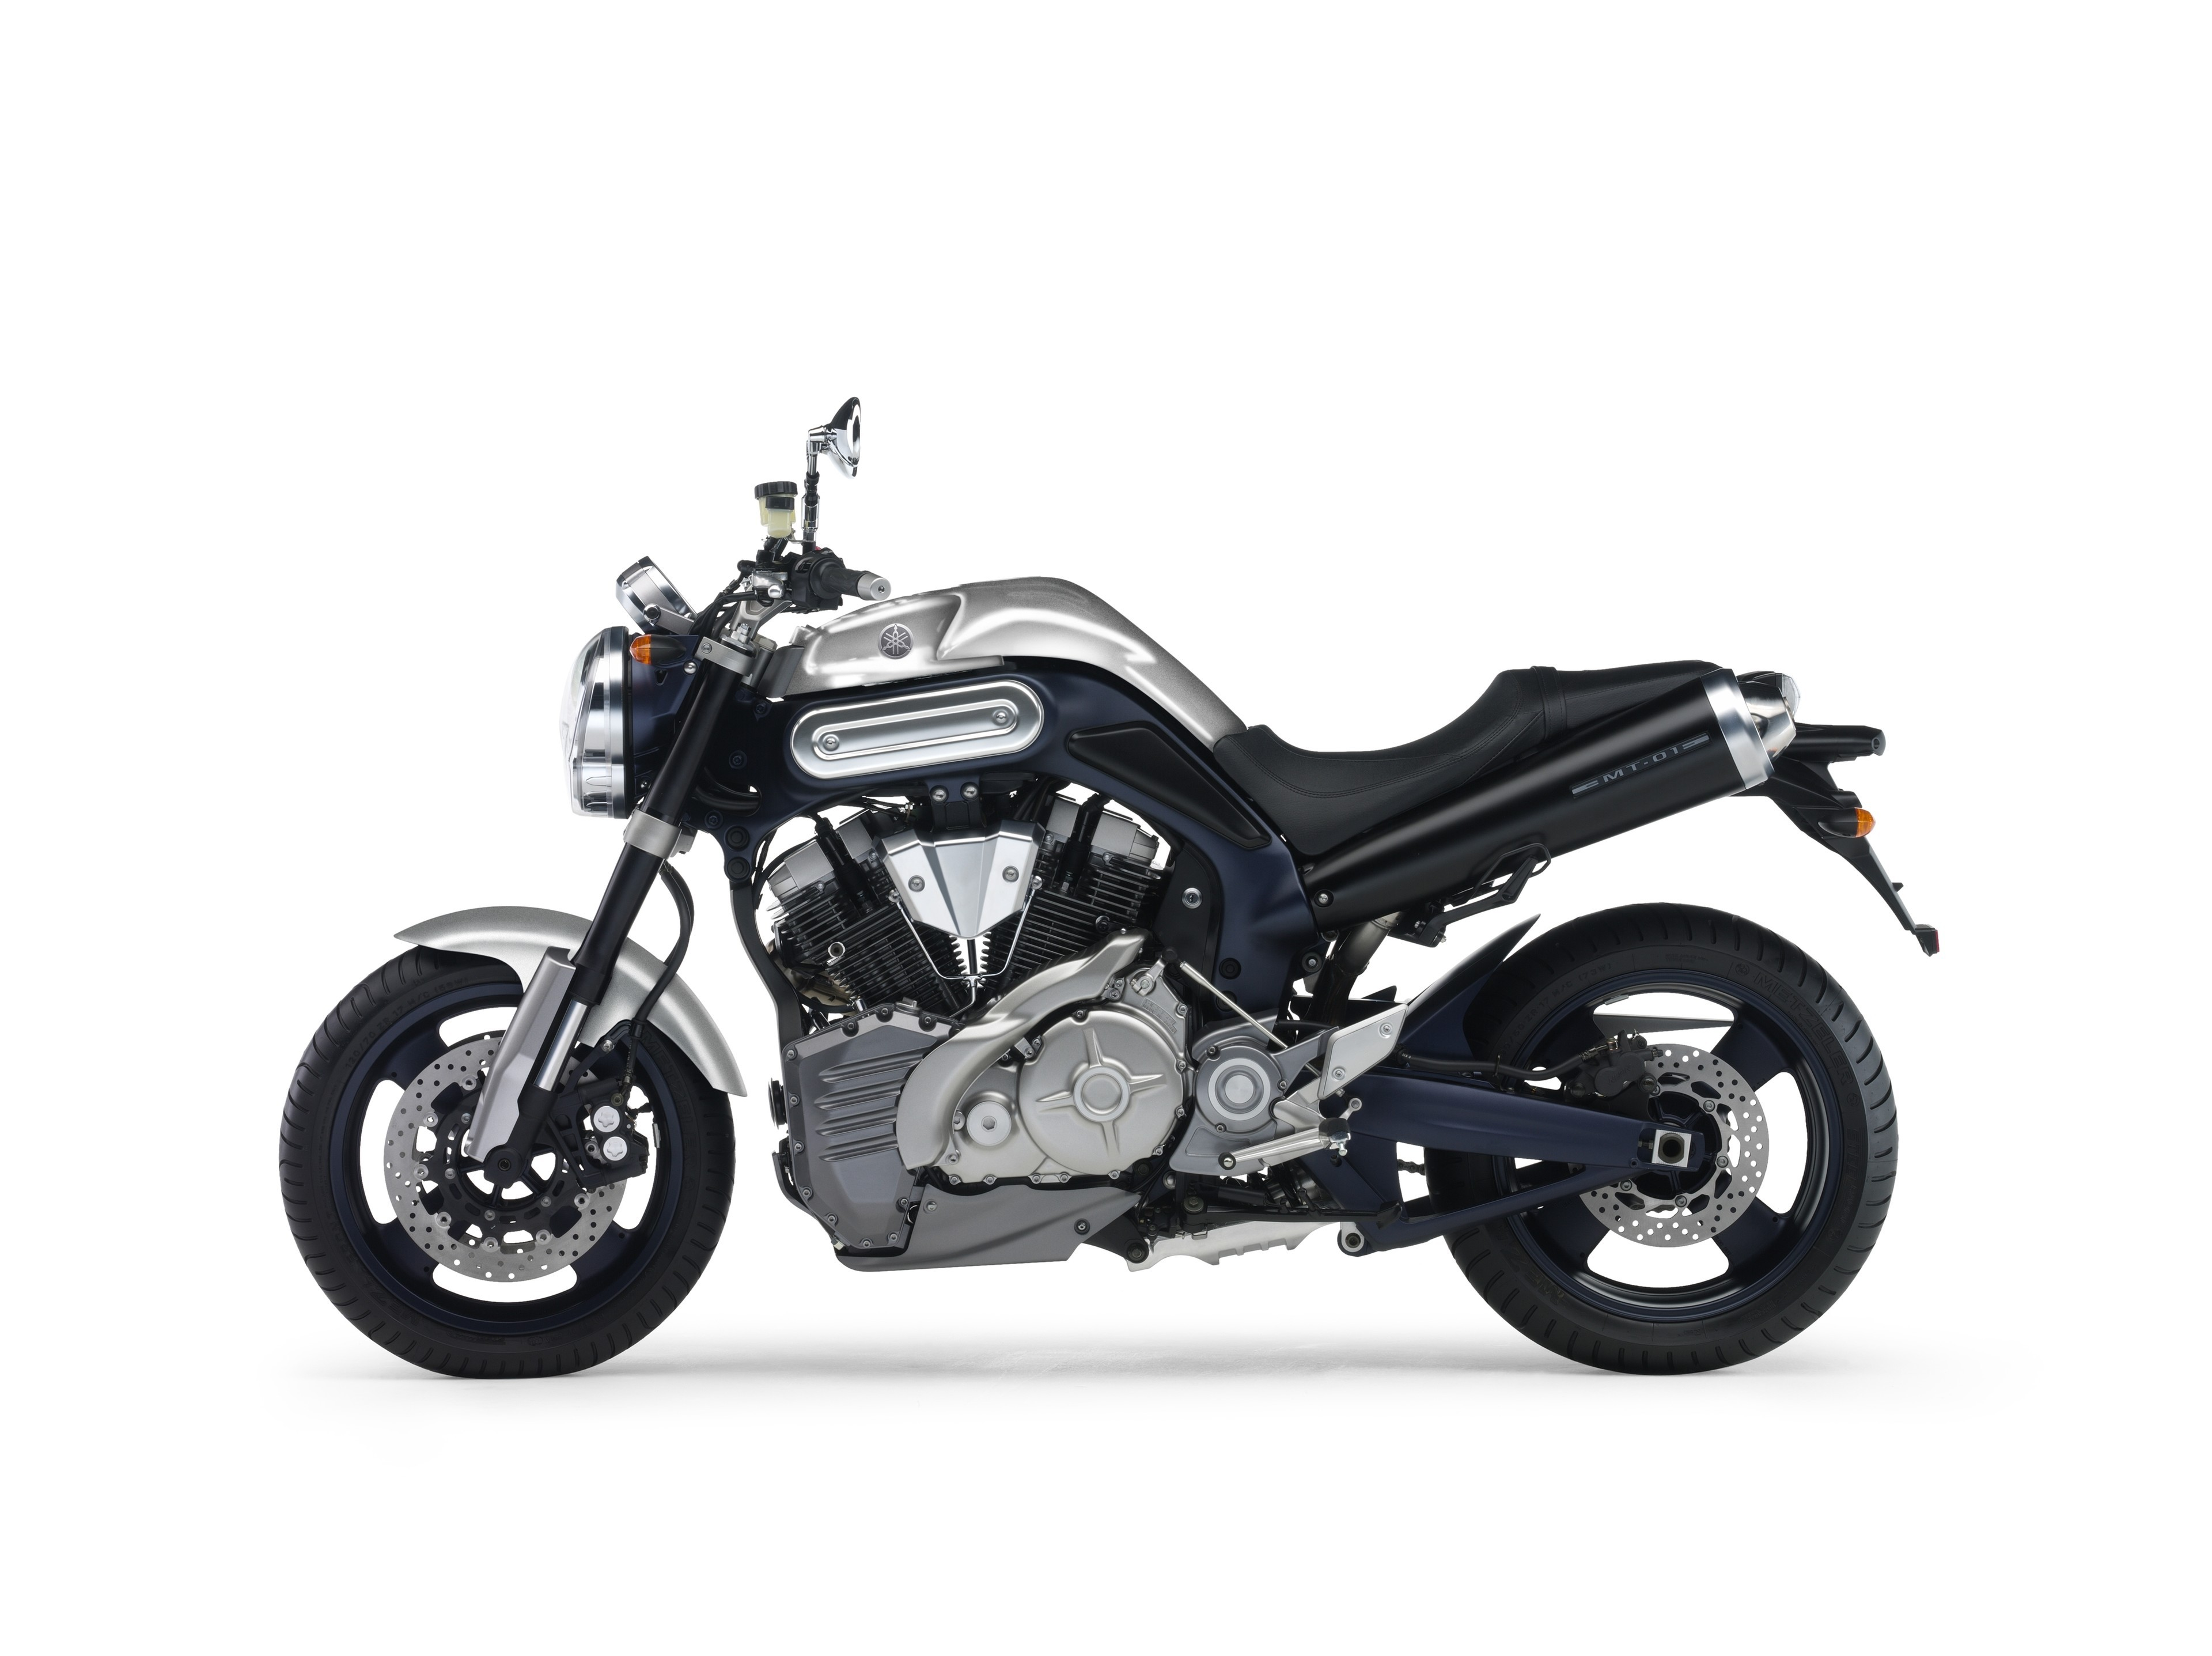 Yamaha clipart motorcycle 01 (2005 MT guide price